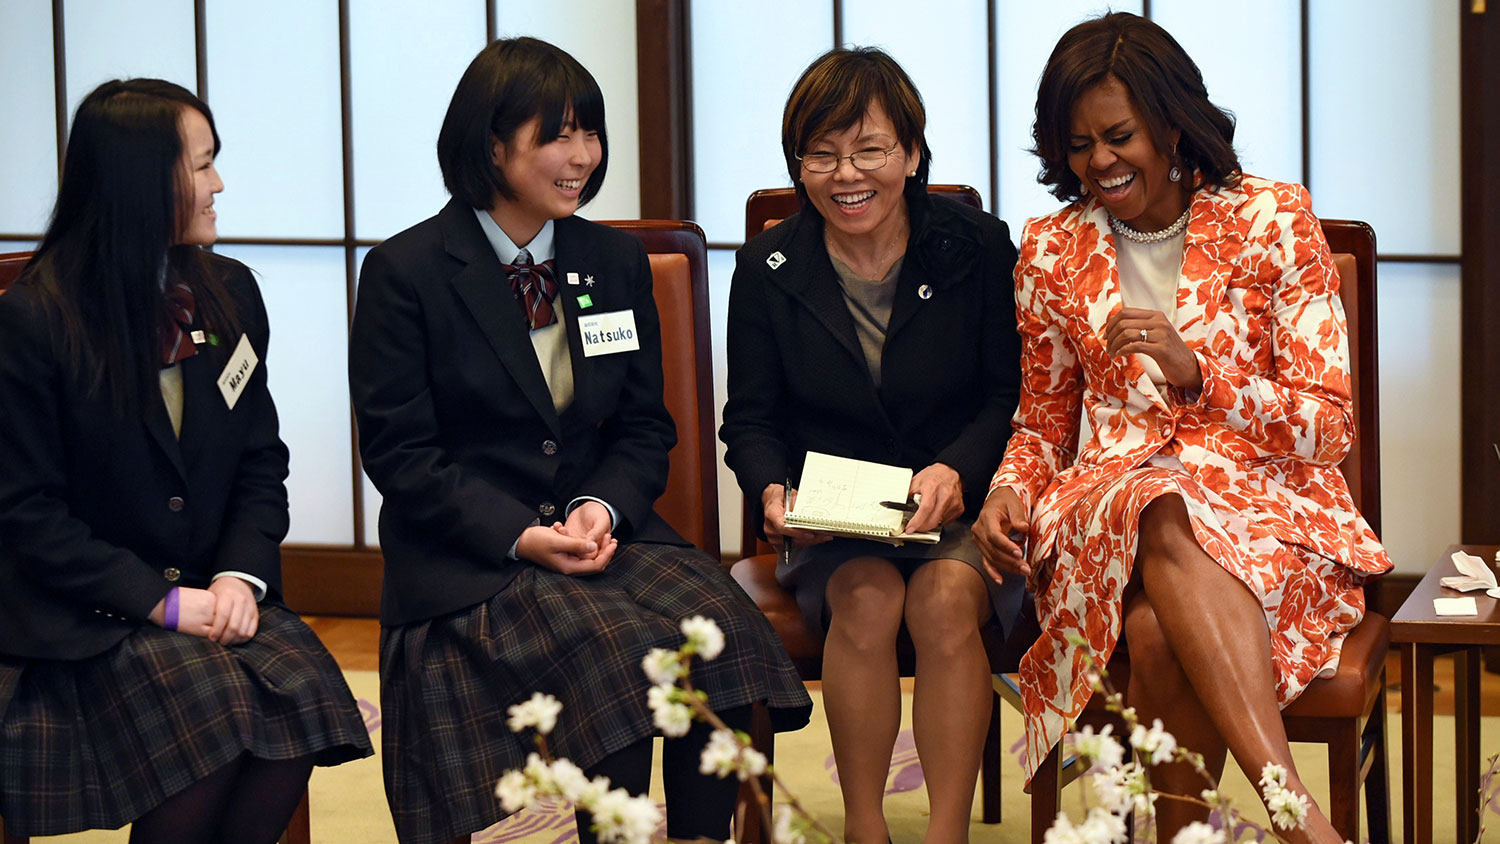 Obama meets with Tokyo students